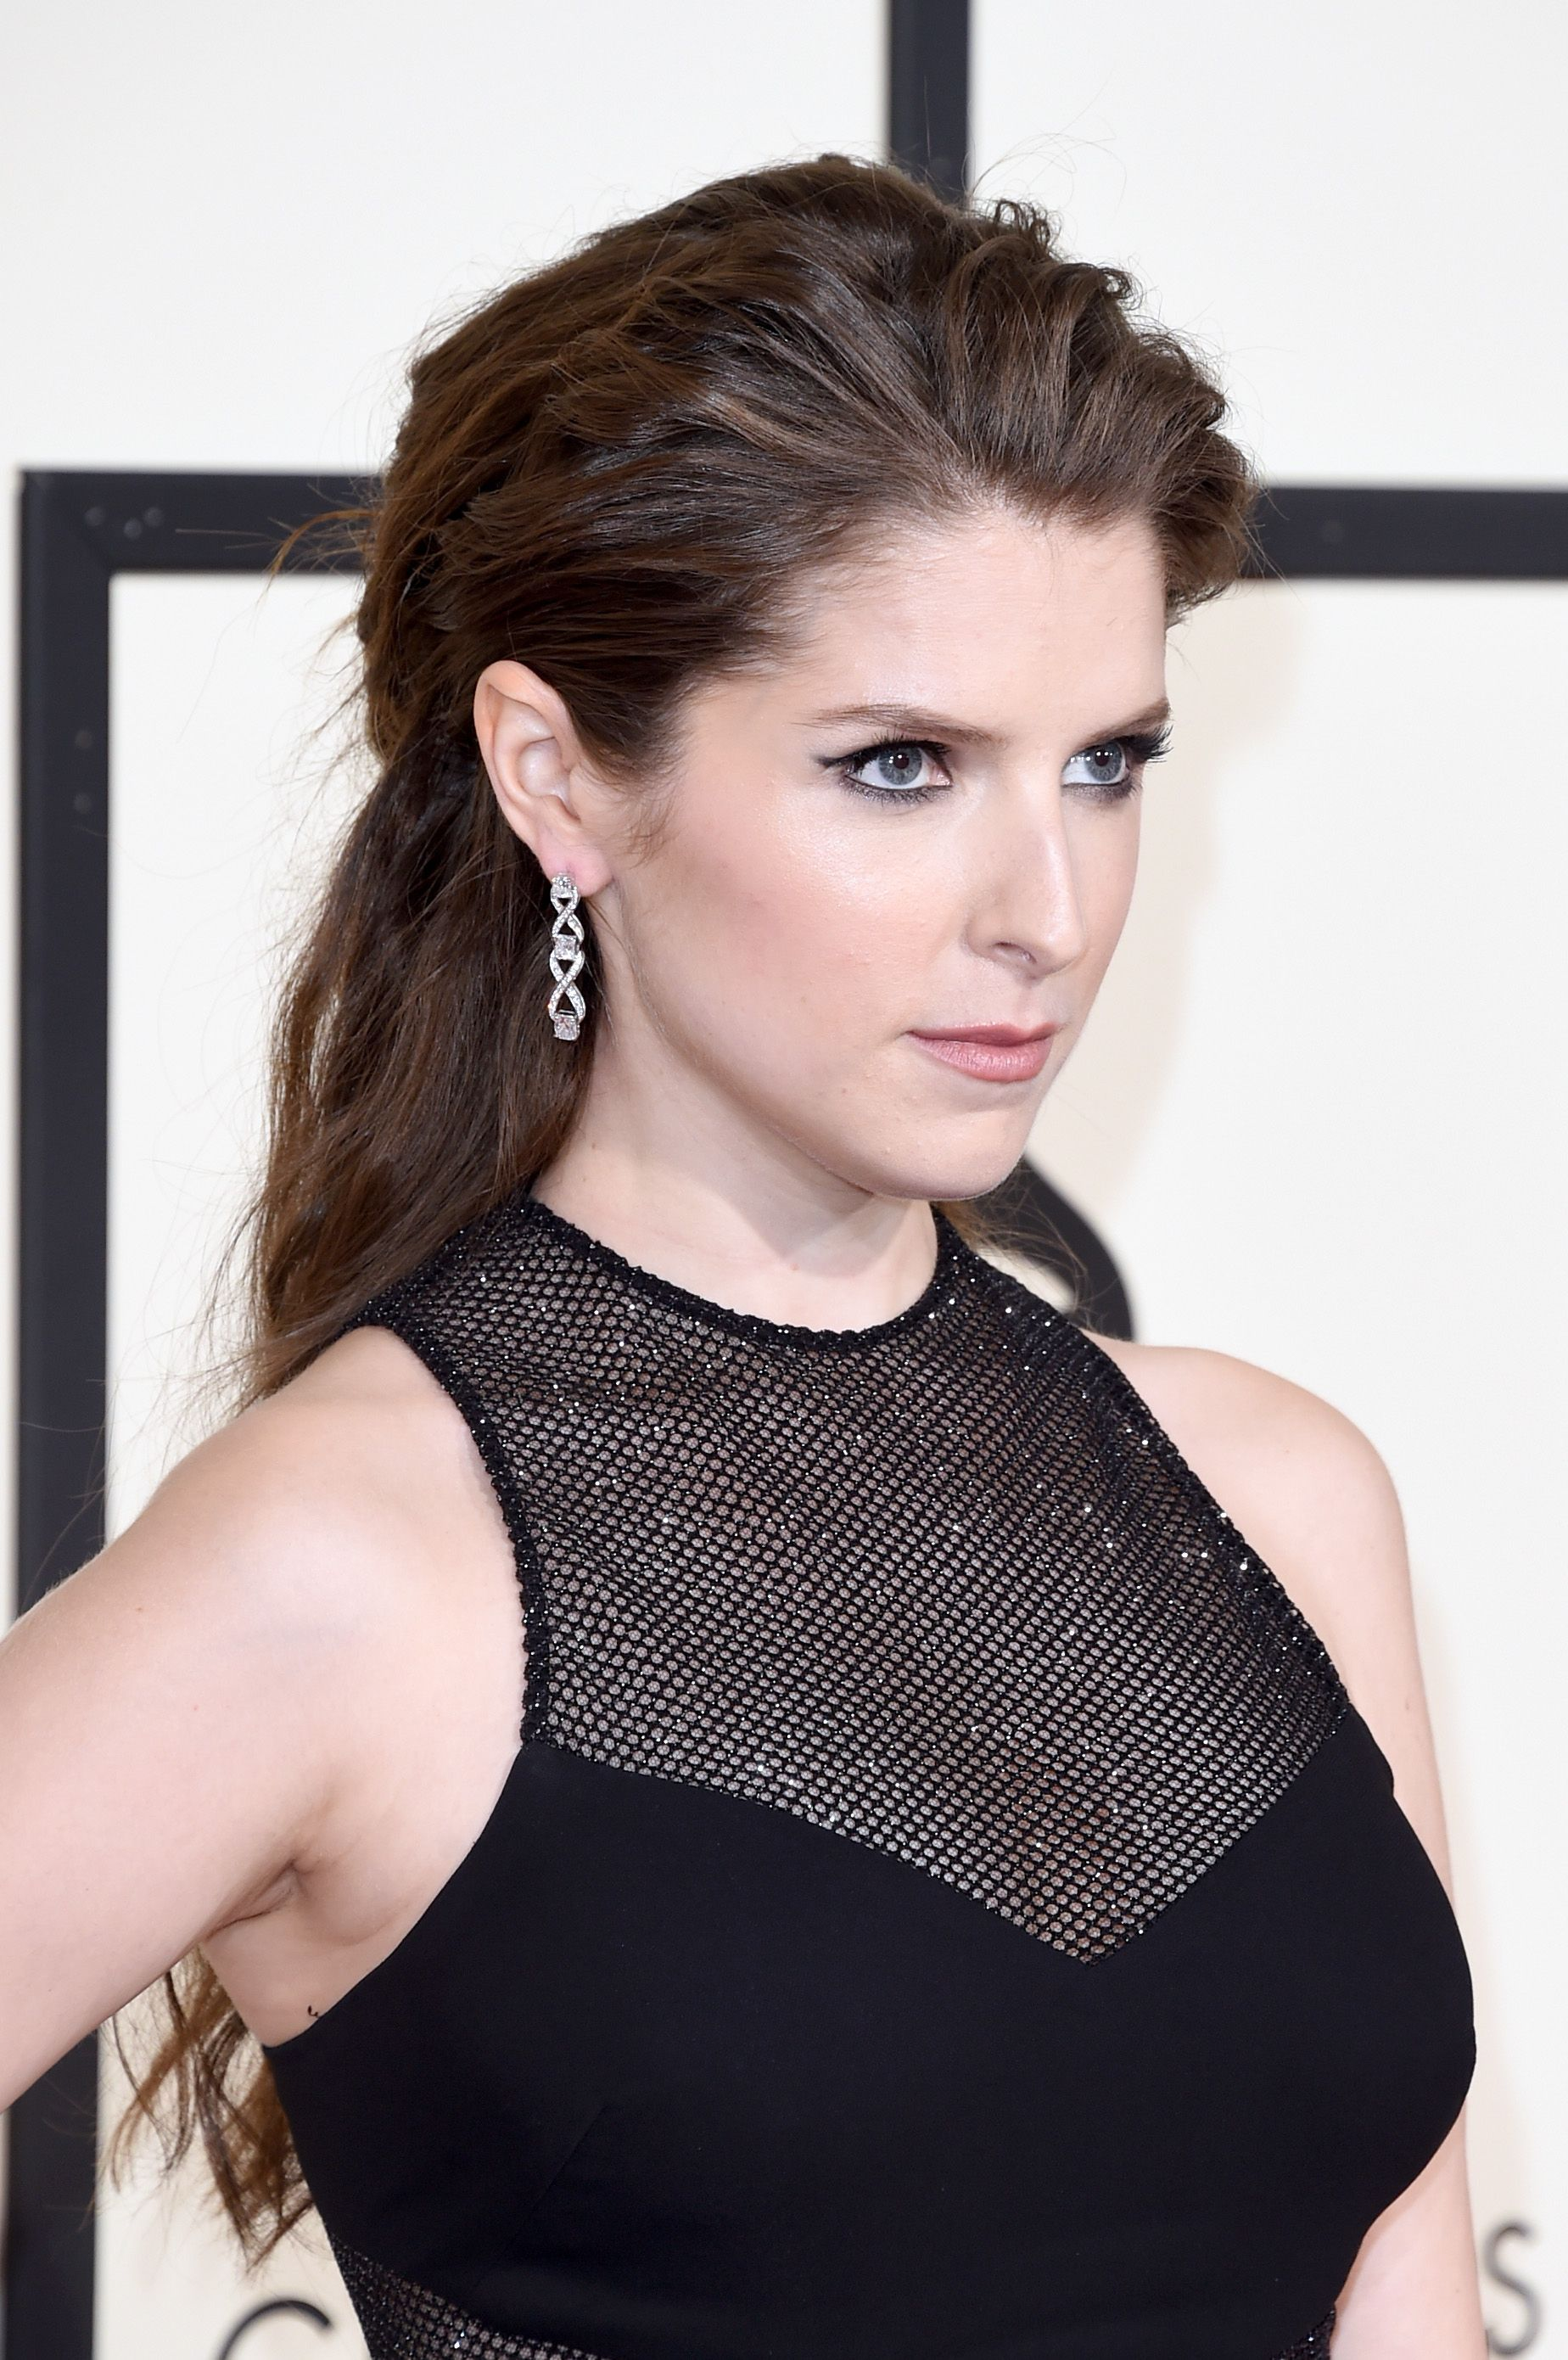 Anna Kendrick Nudes Reveal Her Naughty Side (29 PICS)